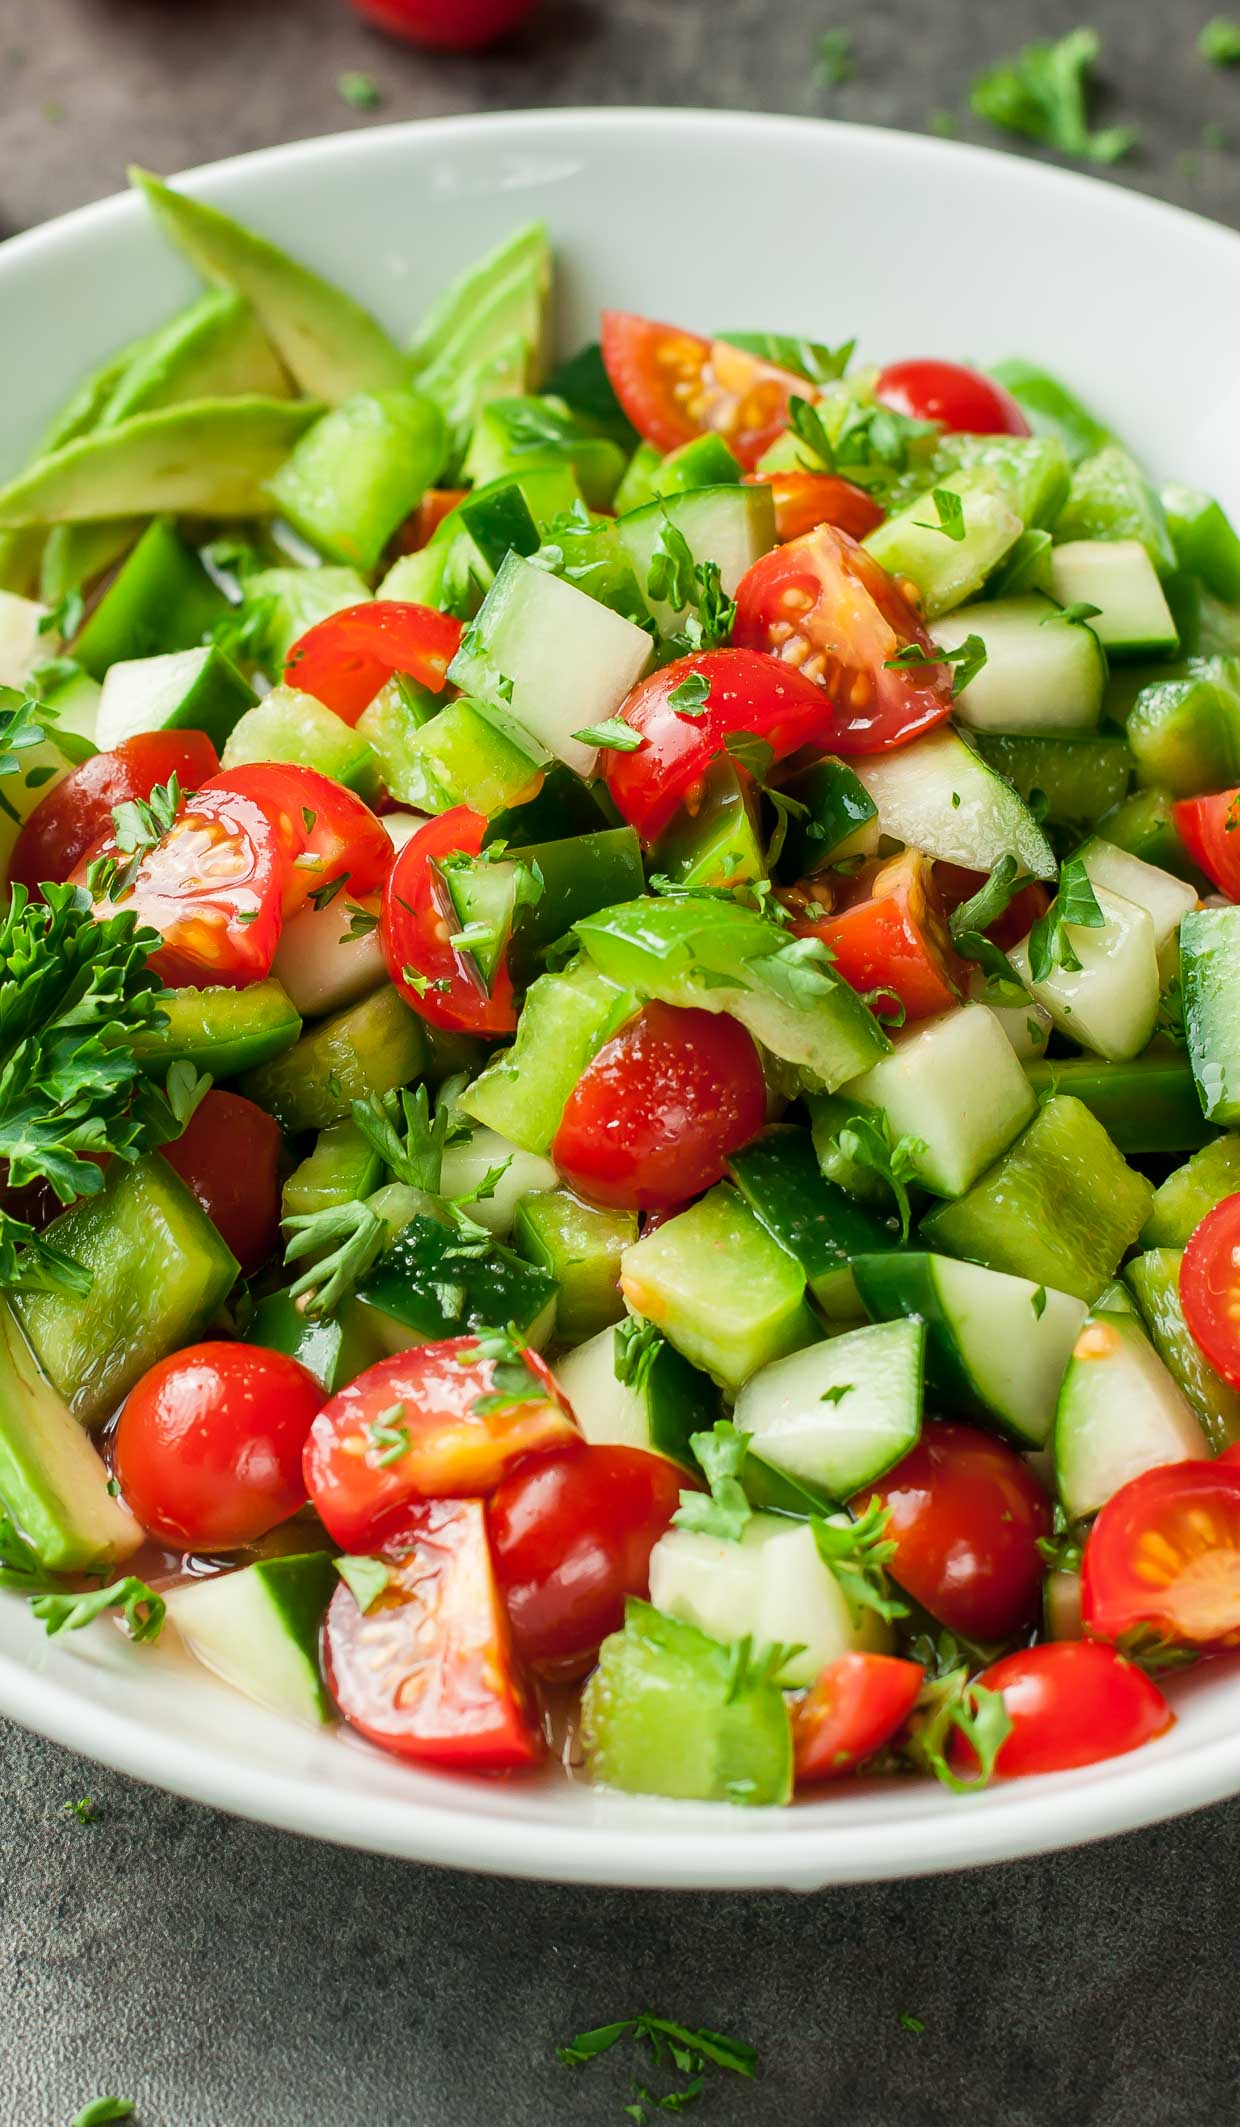 12 Tasty Salad Recipes To Step Up Your Salad Game Peas And